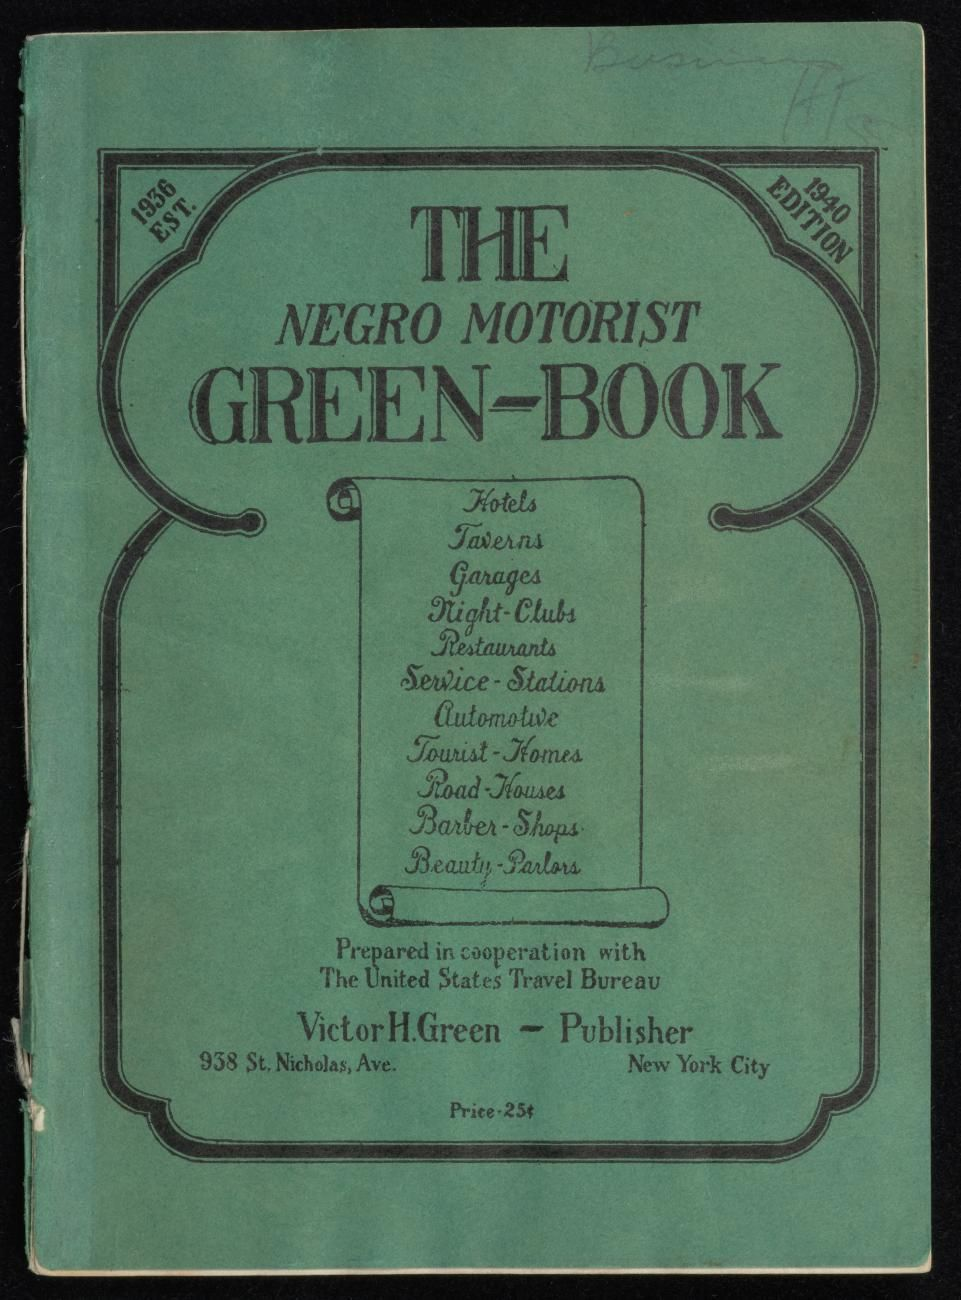 How a little green book saved black lives on the road